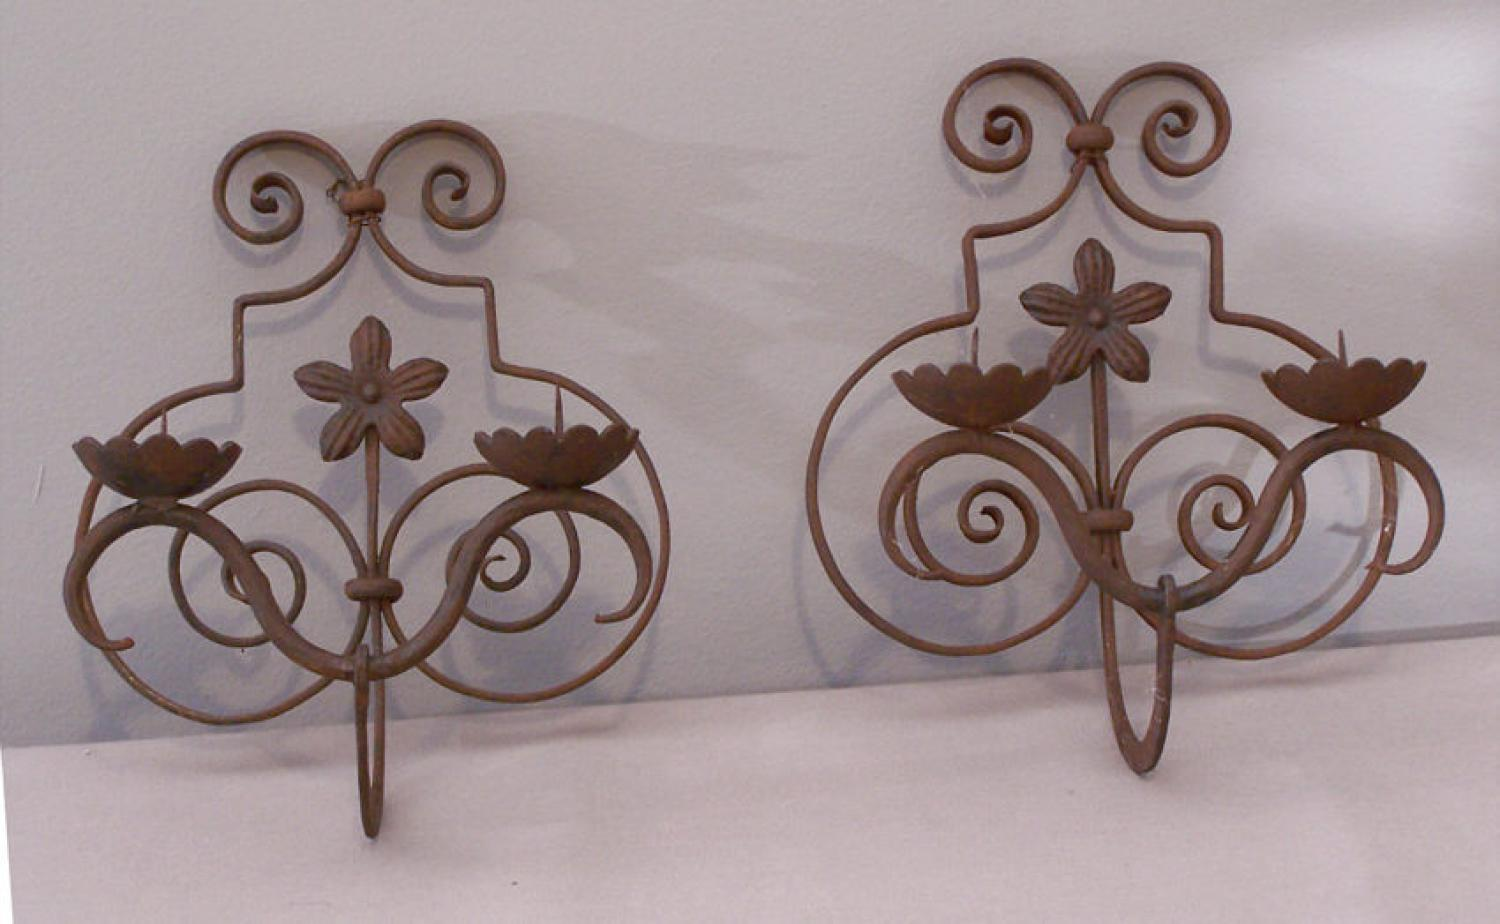 Renaissance style hand wrought iron wall sconces c1890